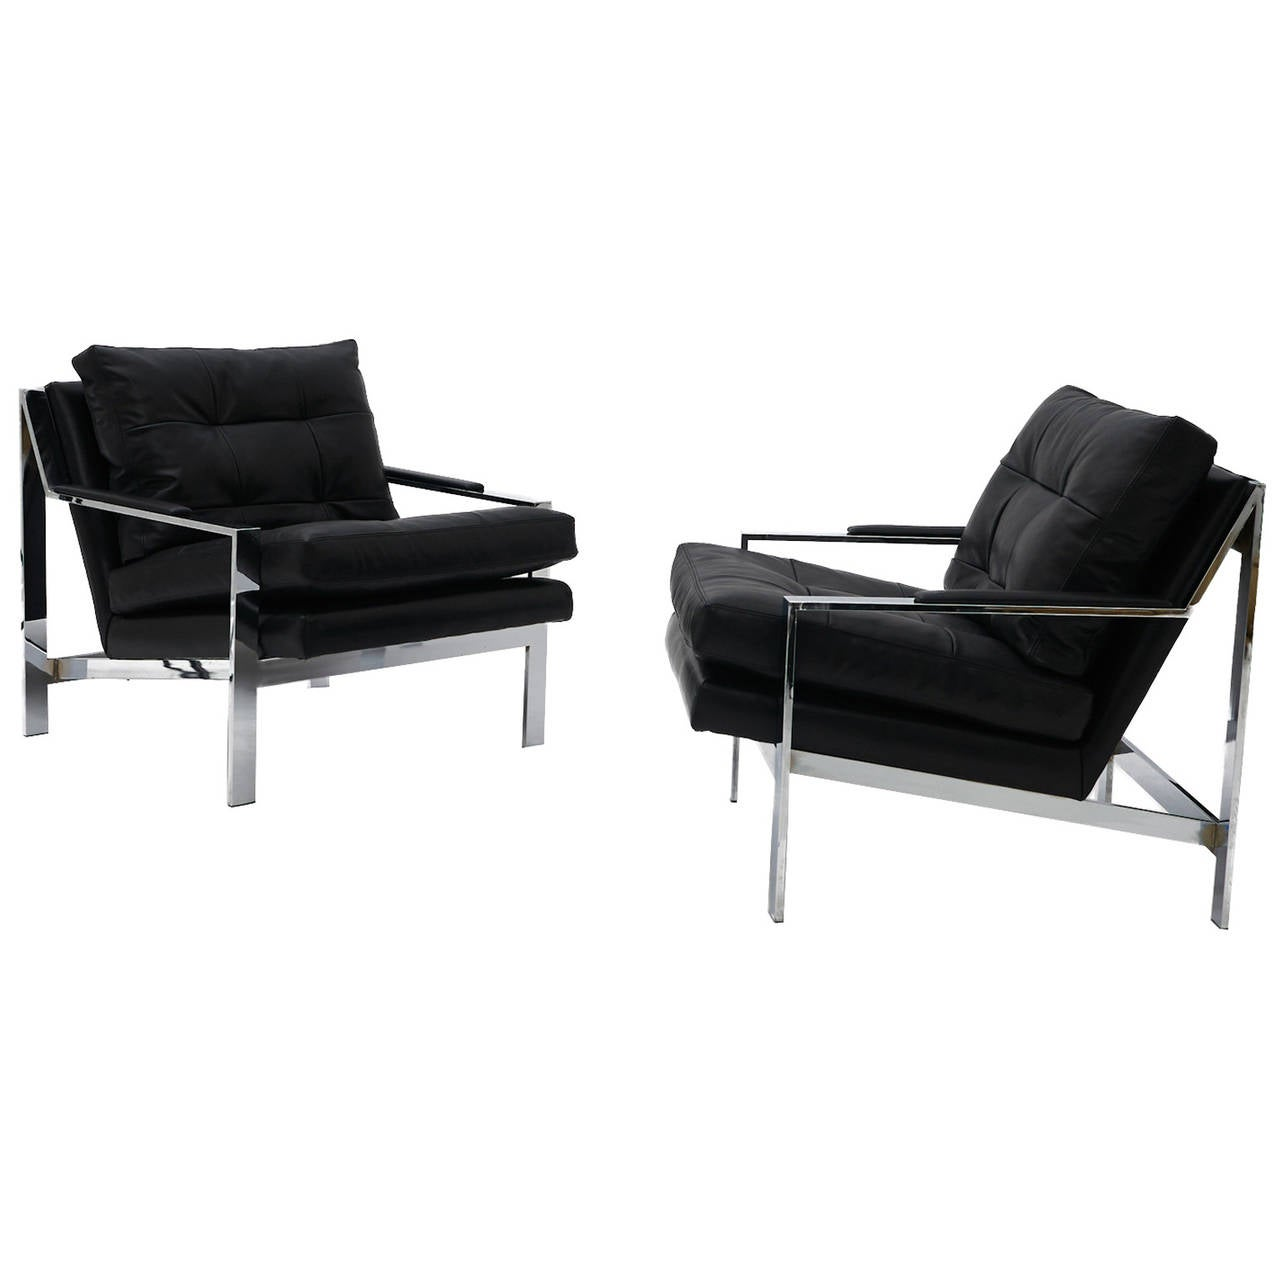 leather and chrome chairs ultra light folding chair pair of black lounge at 1stdibs